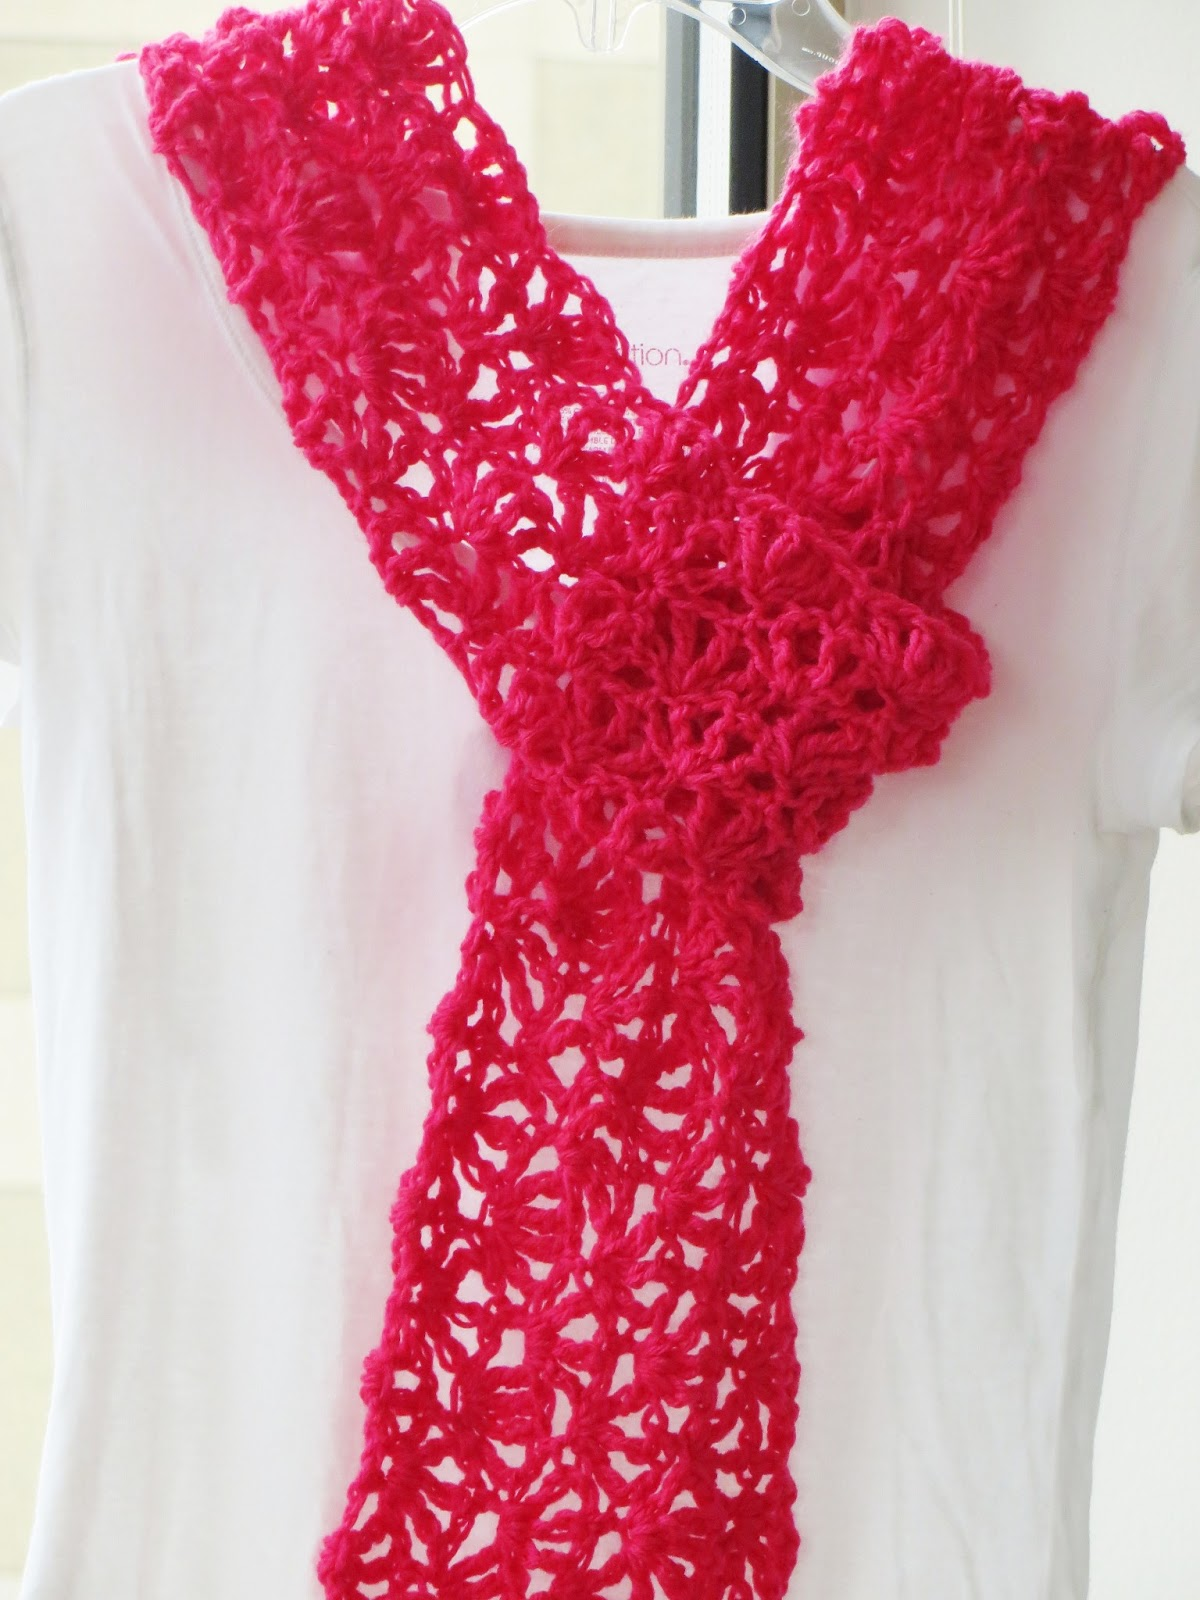 How To Crochet A Scarf : Crochet Dreamz: Alana Lacy Scarf, Free Crochet Pattern